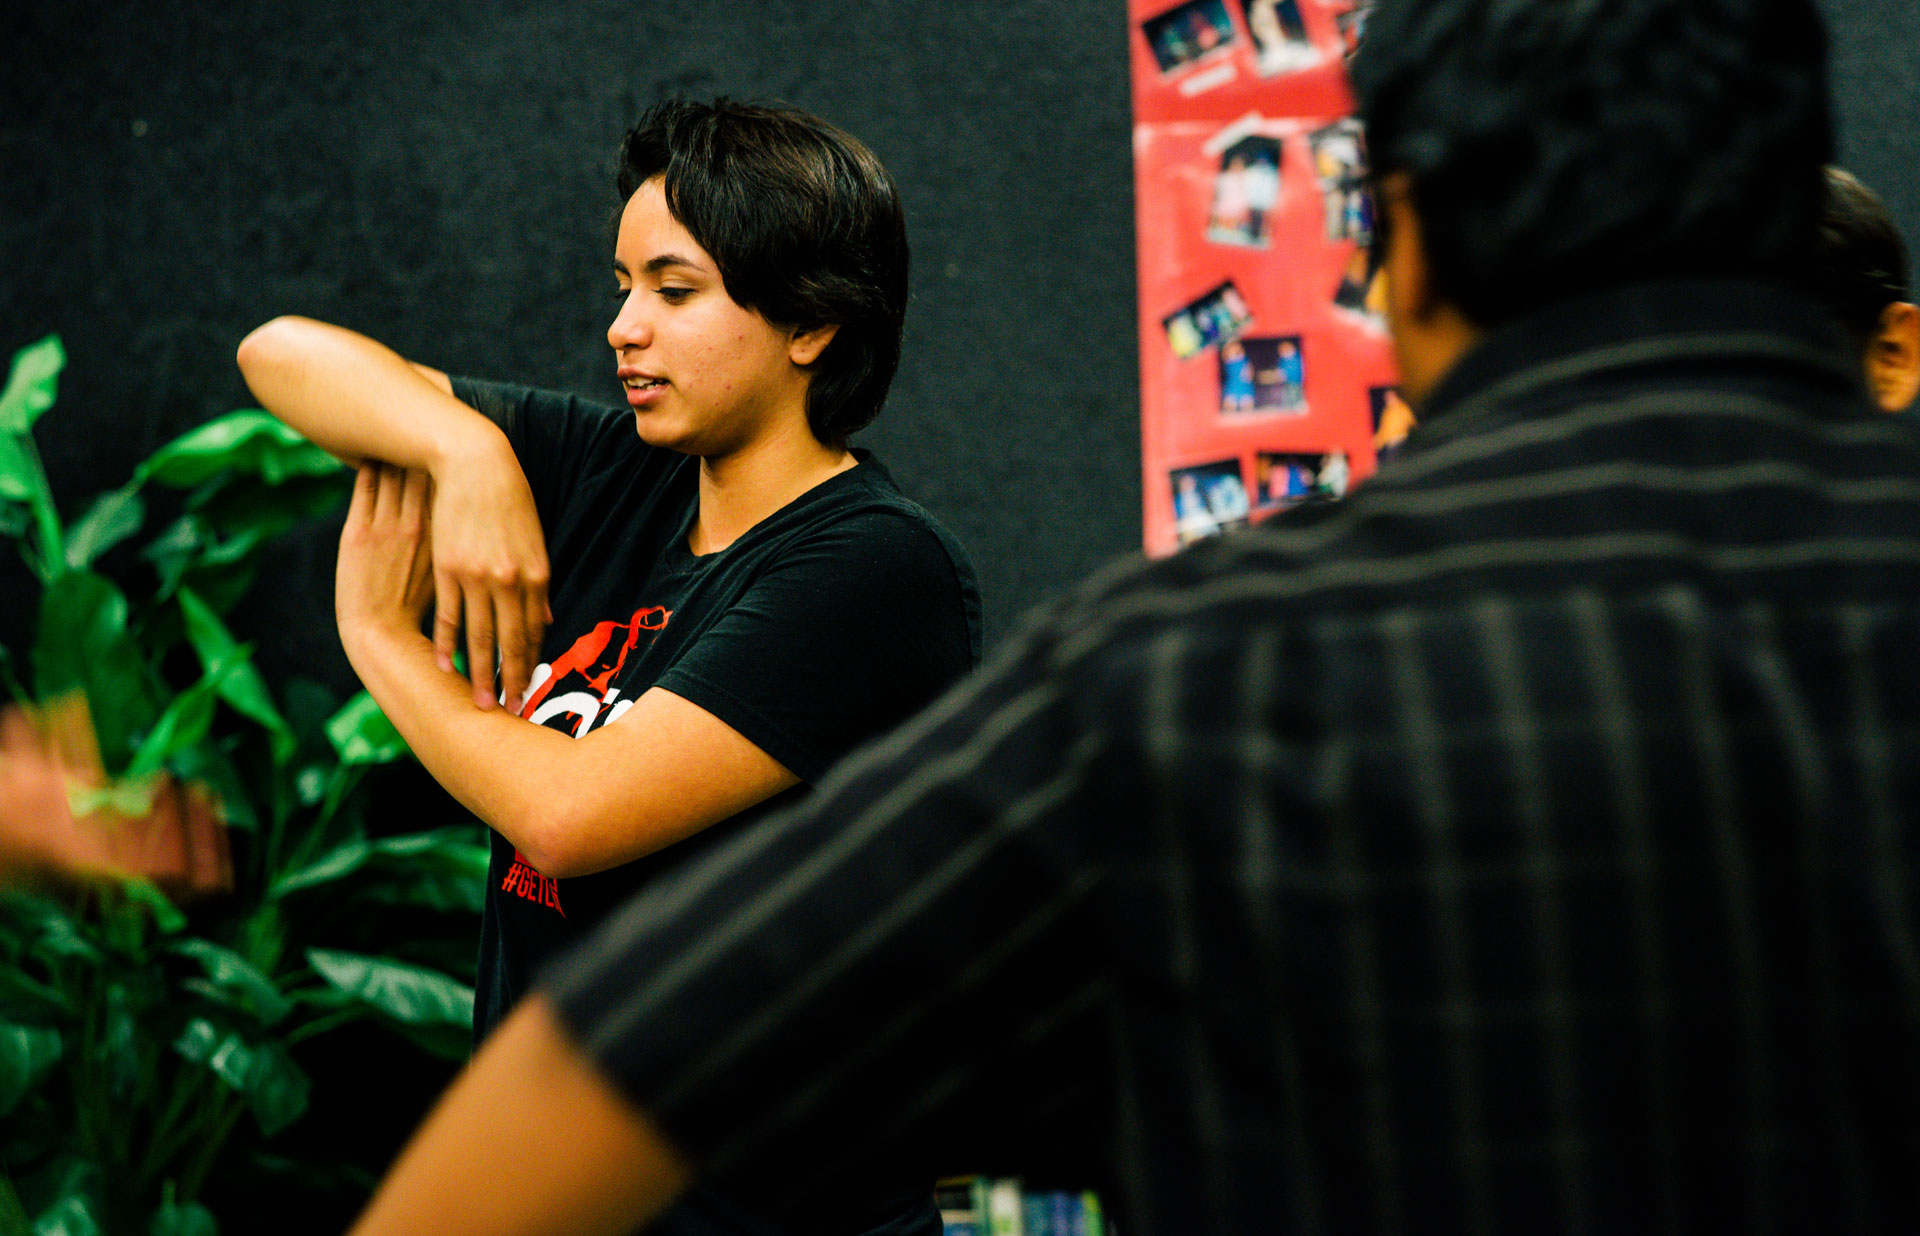 """Rosy Mendez in her improv class at Desert Mirage High School. """"I love photography and drama,"""" she says. """"But my dream is to become an engineer."""""""